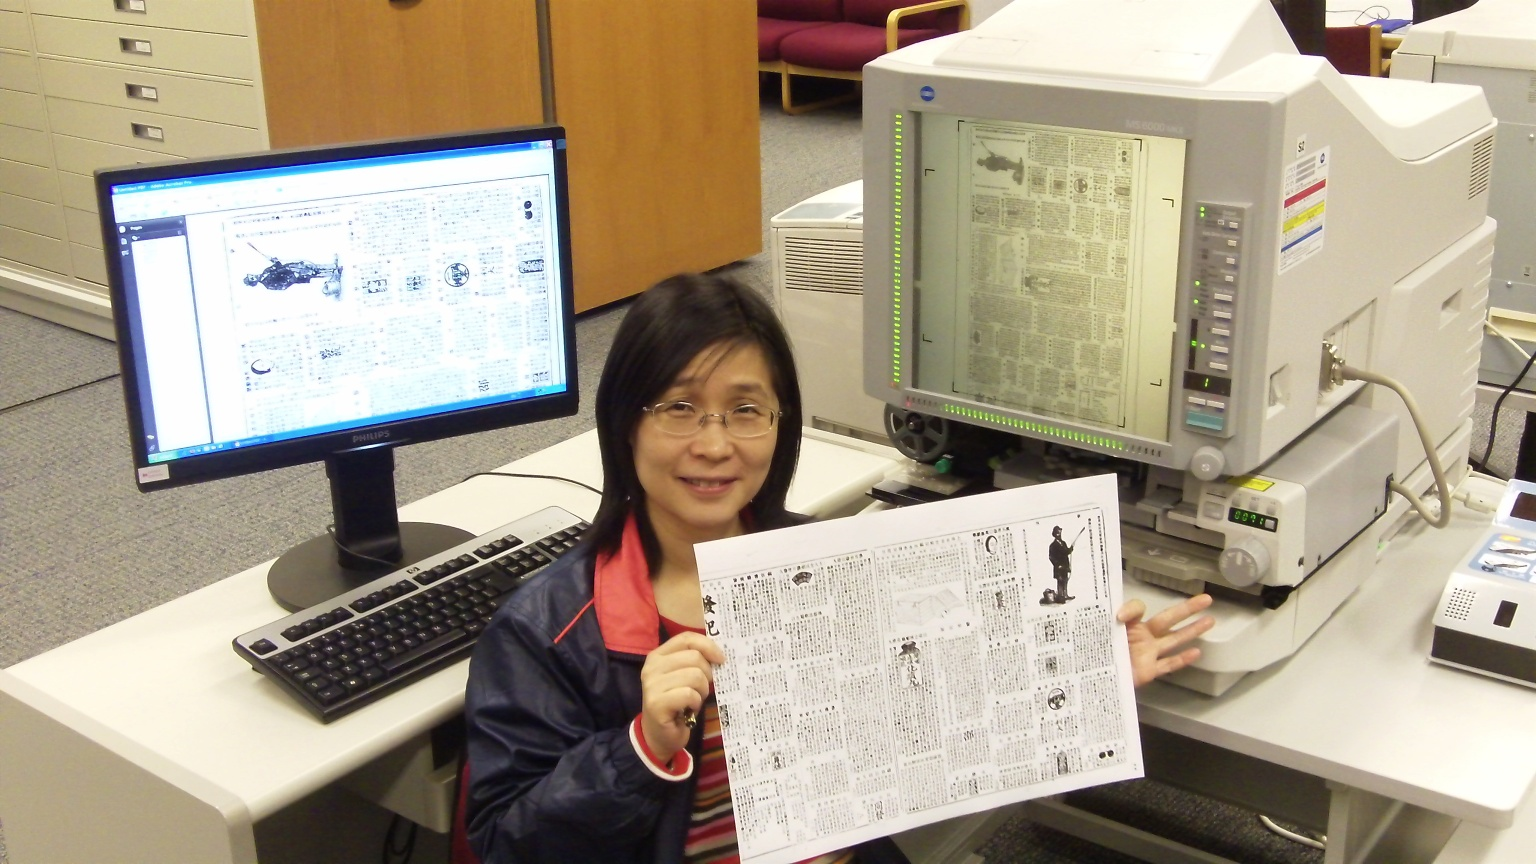 A3 Photo Printing A3 Printing From Microforms Now Available Hkust Library Blog